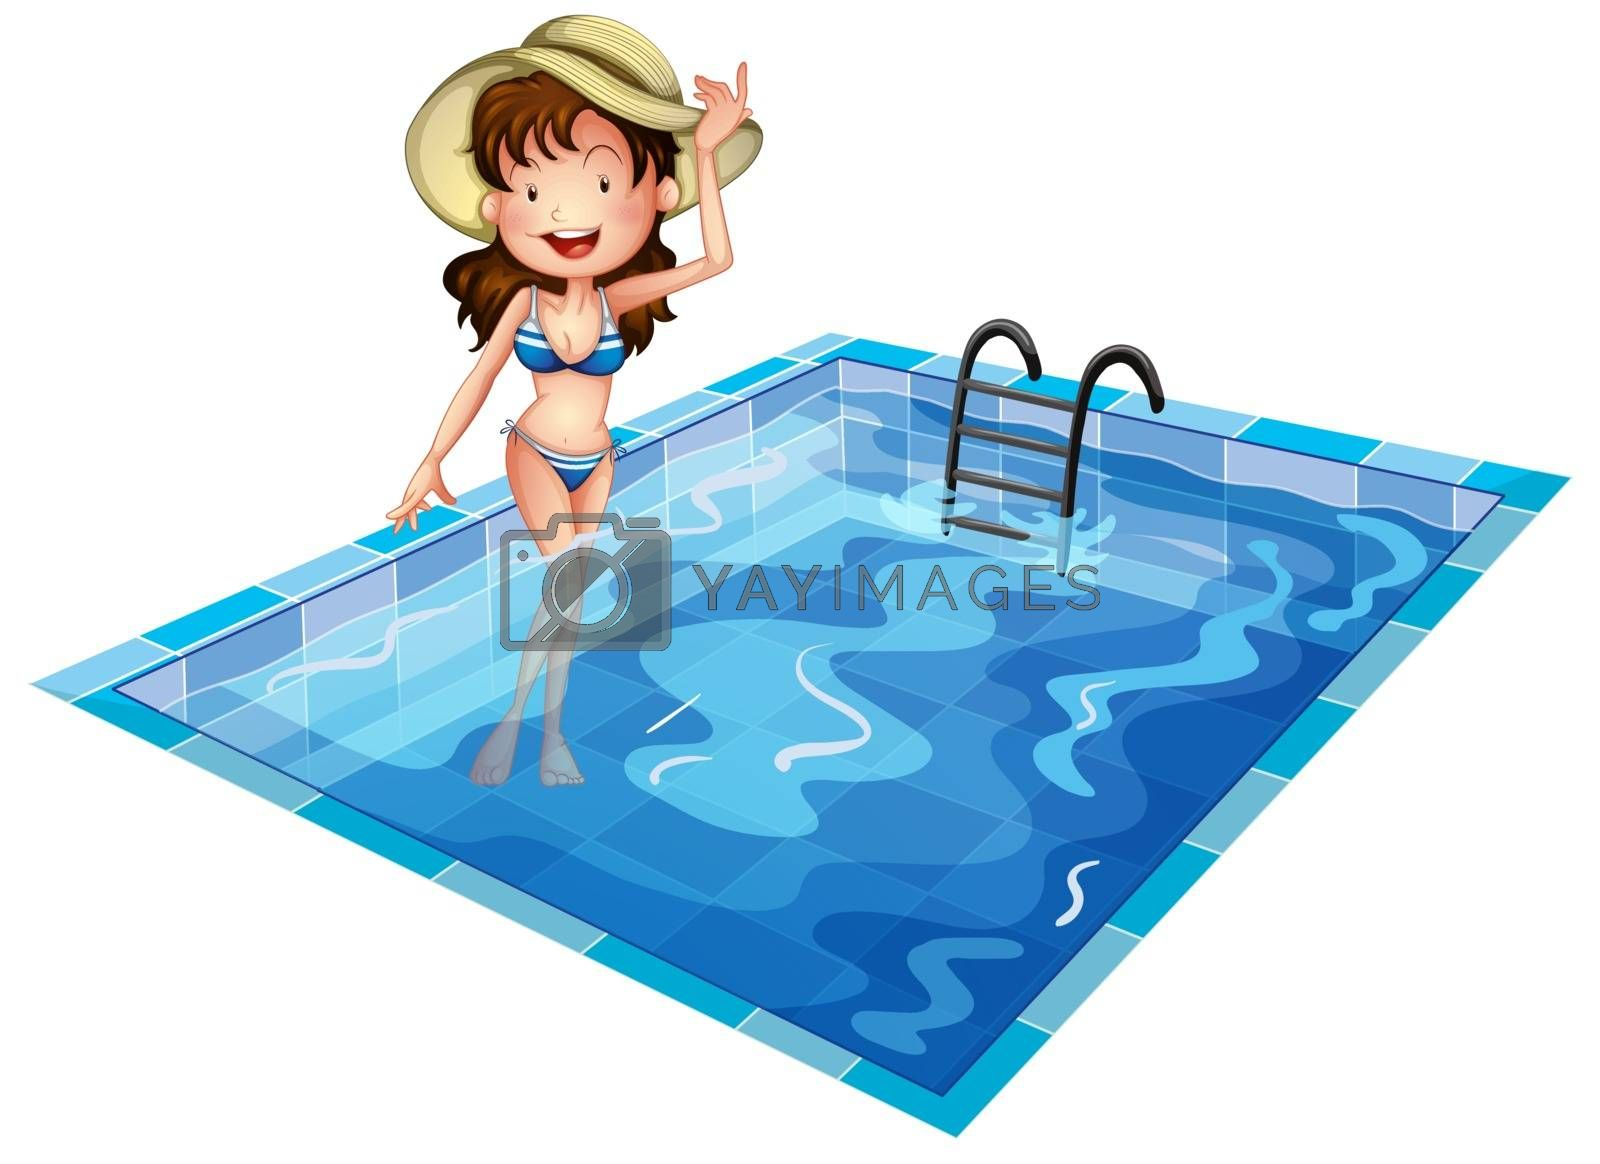 Illustration of a girl wearing a swimsuit at the pool on a white background